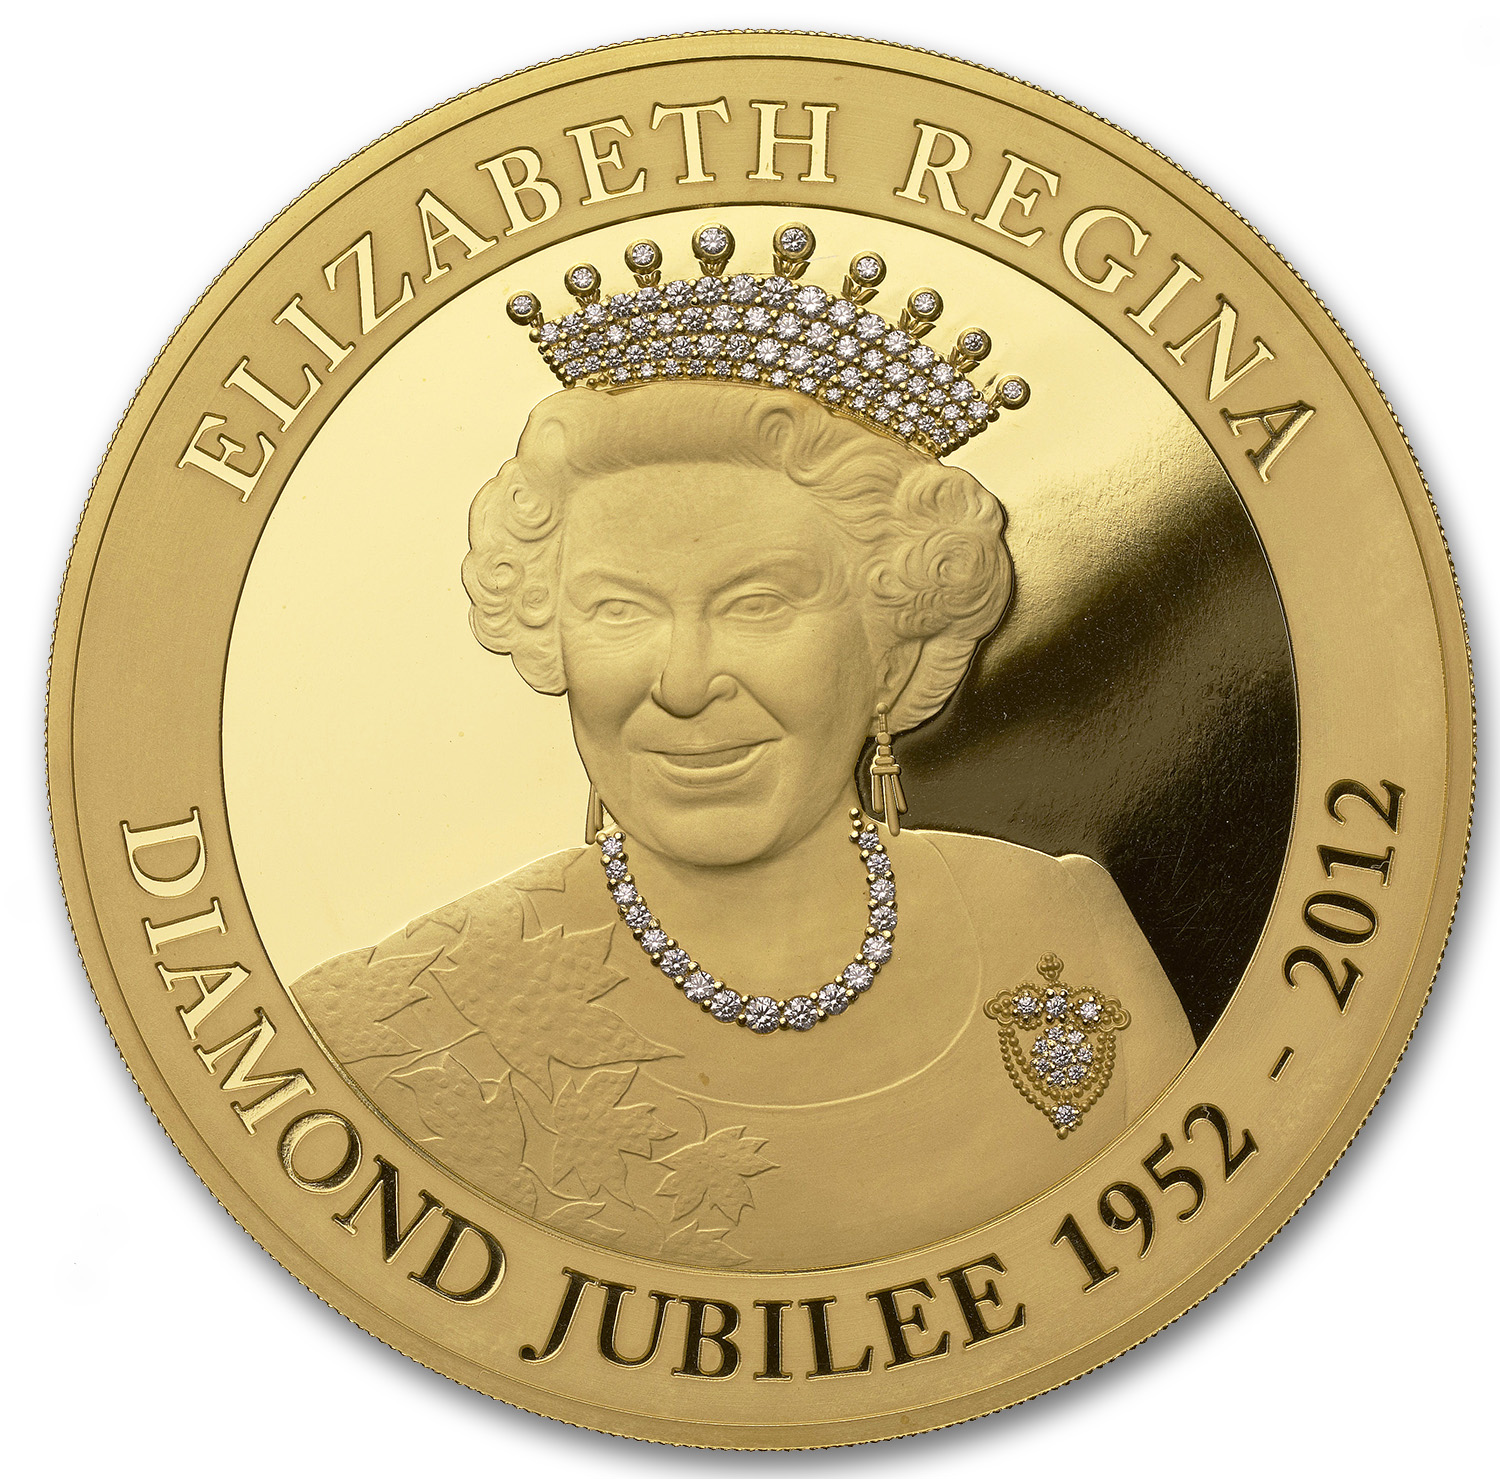 2013 Queen Elizabeth Diamond Jubilee Gold Coin 1 Kilogram